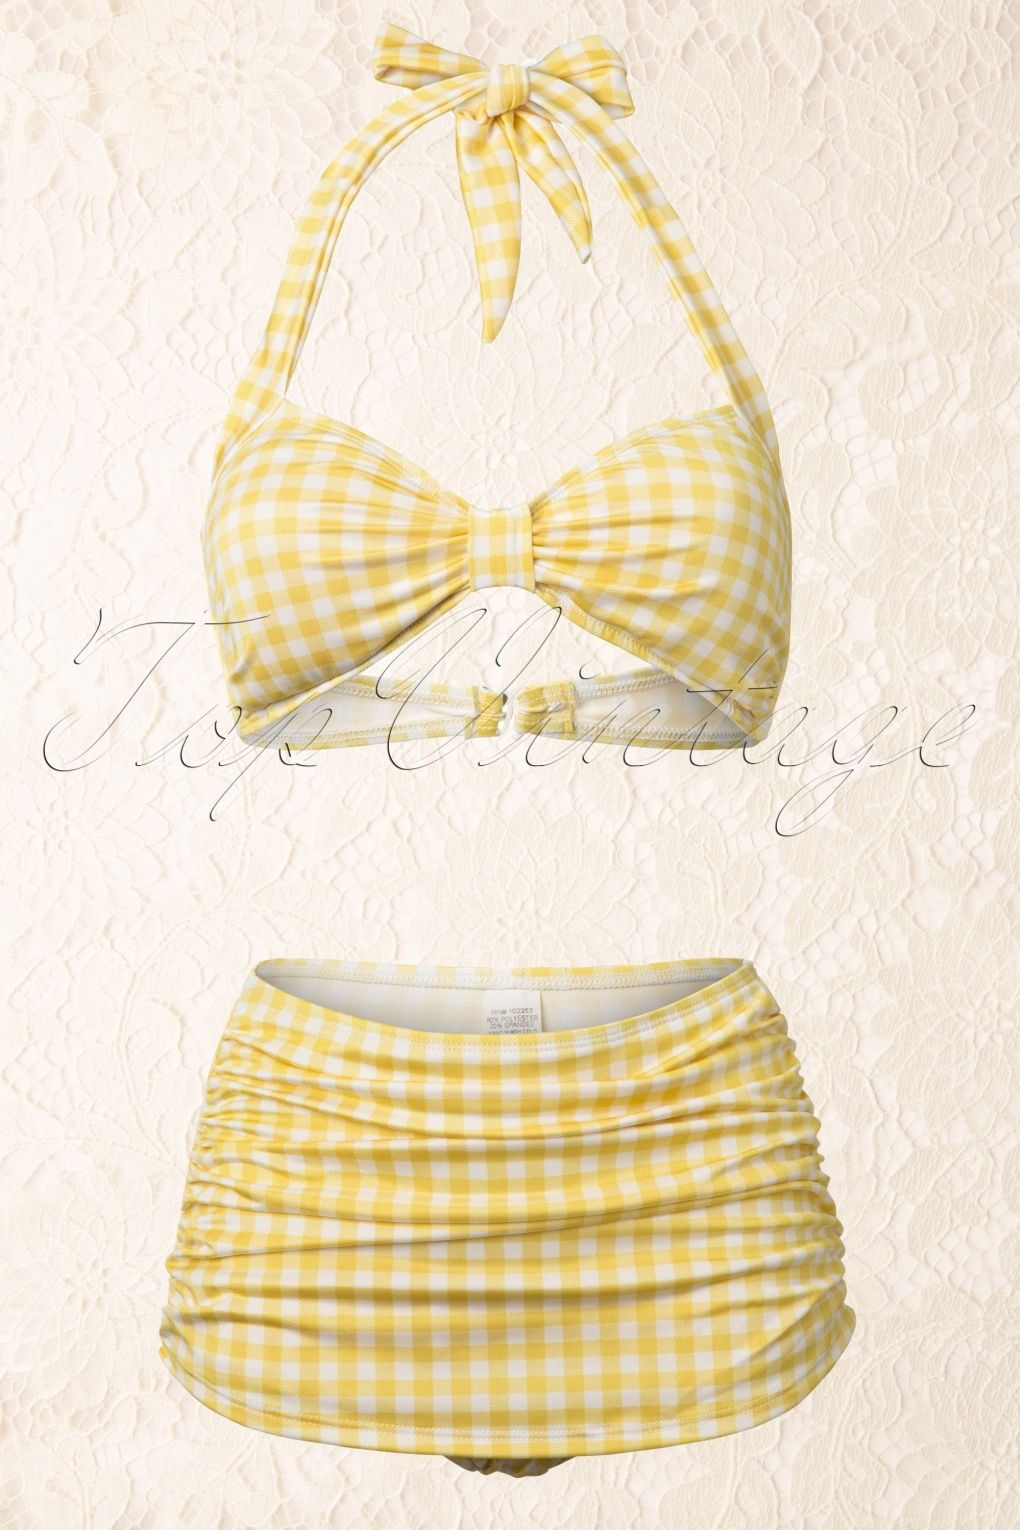 126113b85418a Perfect retro suit for some fun in the sun:: Vintage gingham bathing suit::  Pin Up Swimwear:: Yellow high waisted bikini:: Vintage skirt bikini bottoms